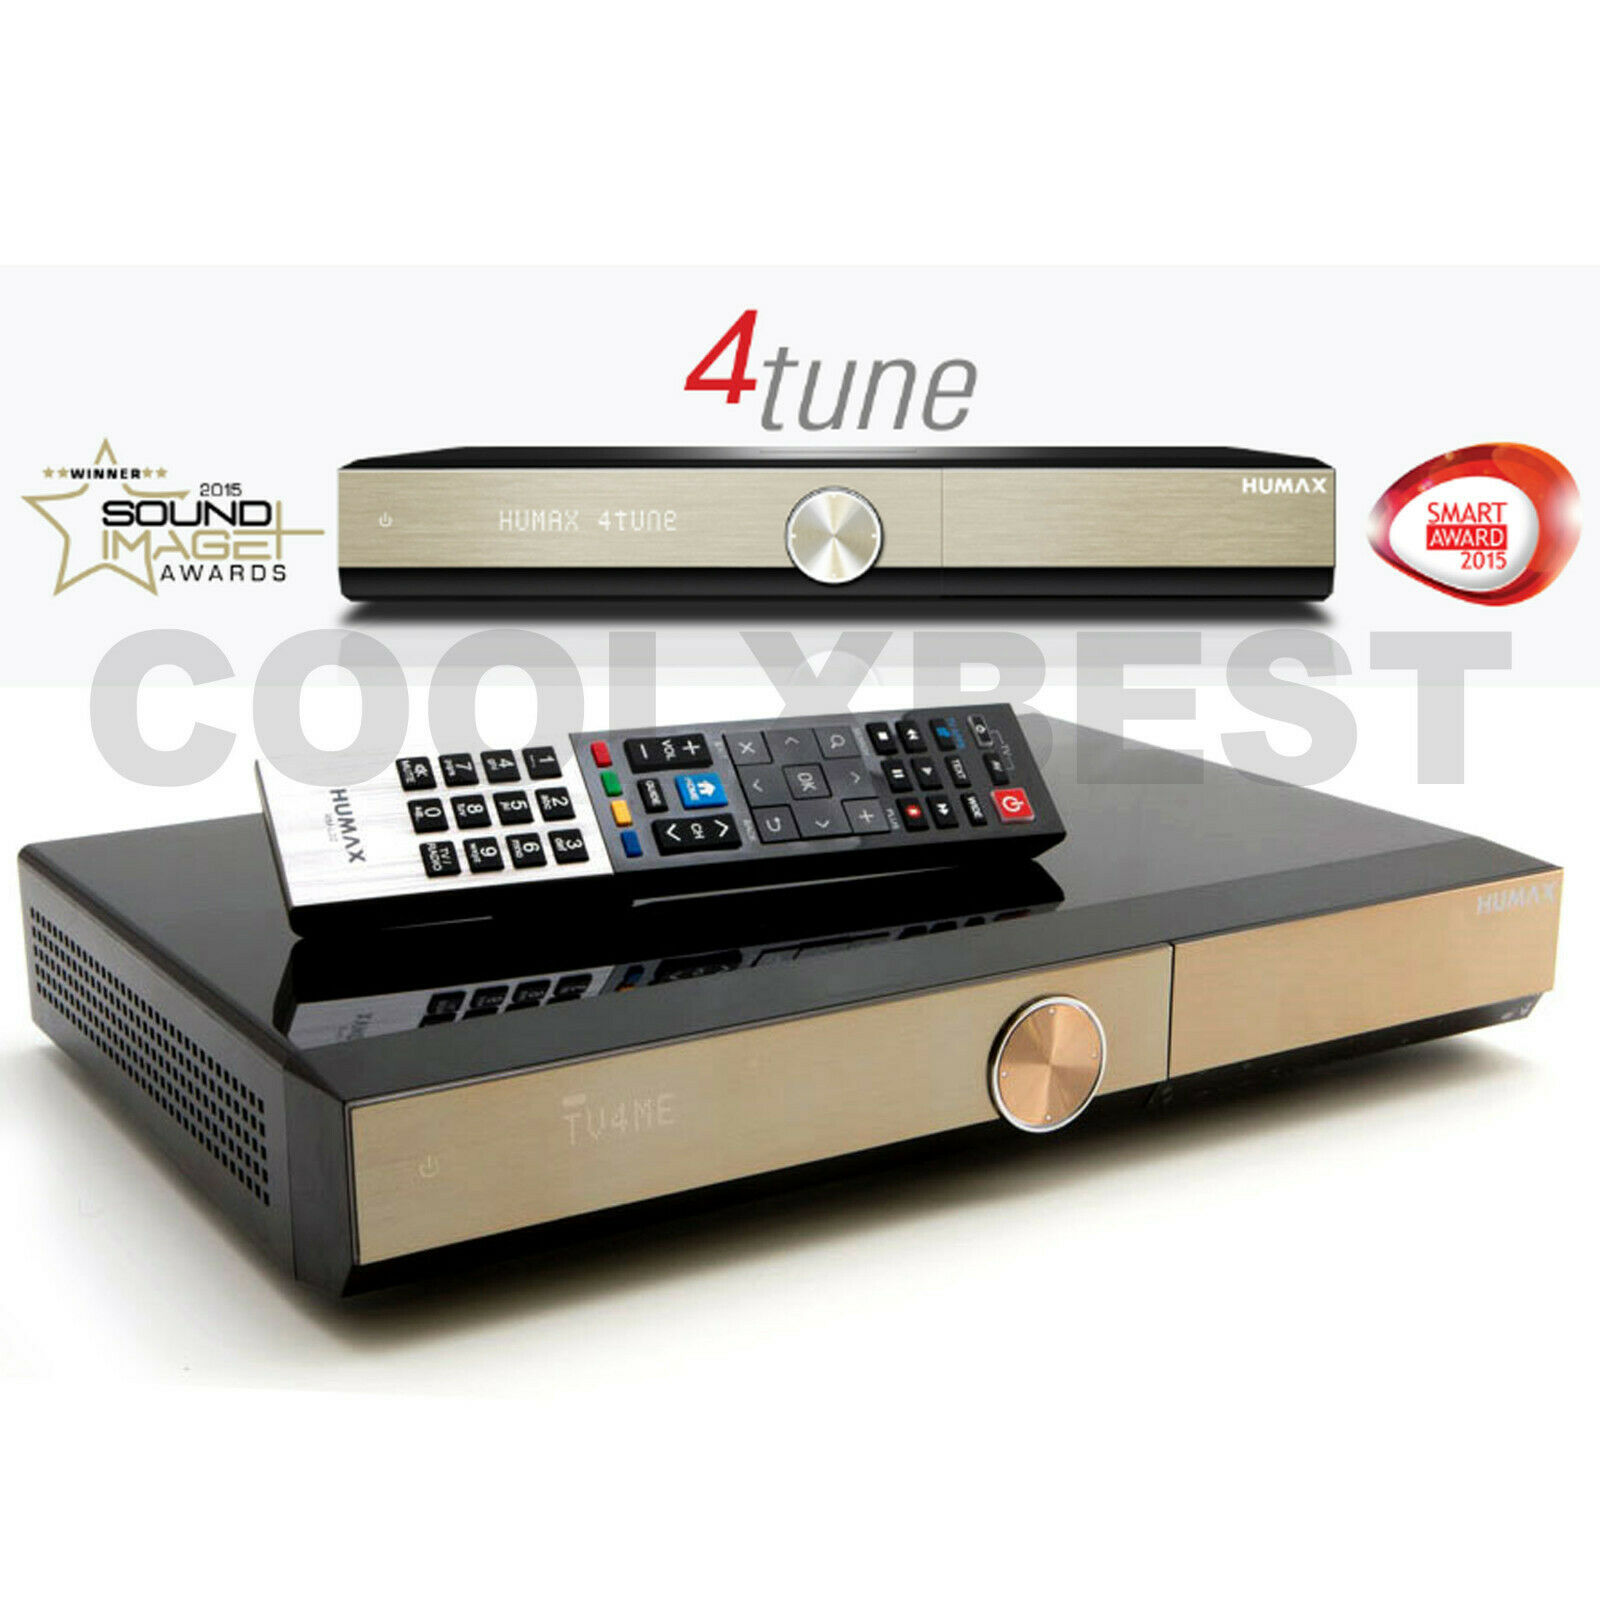 Details about HUMAX 4 TUNER 1TB HDD DIGITAL FULL HD RECORDER PVR WiFi CATCH  UP TV HMS1000T